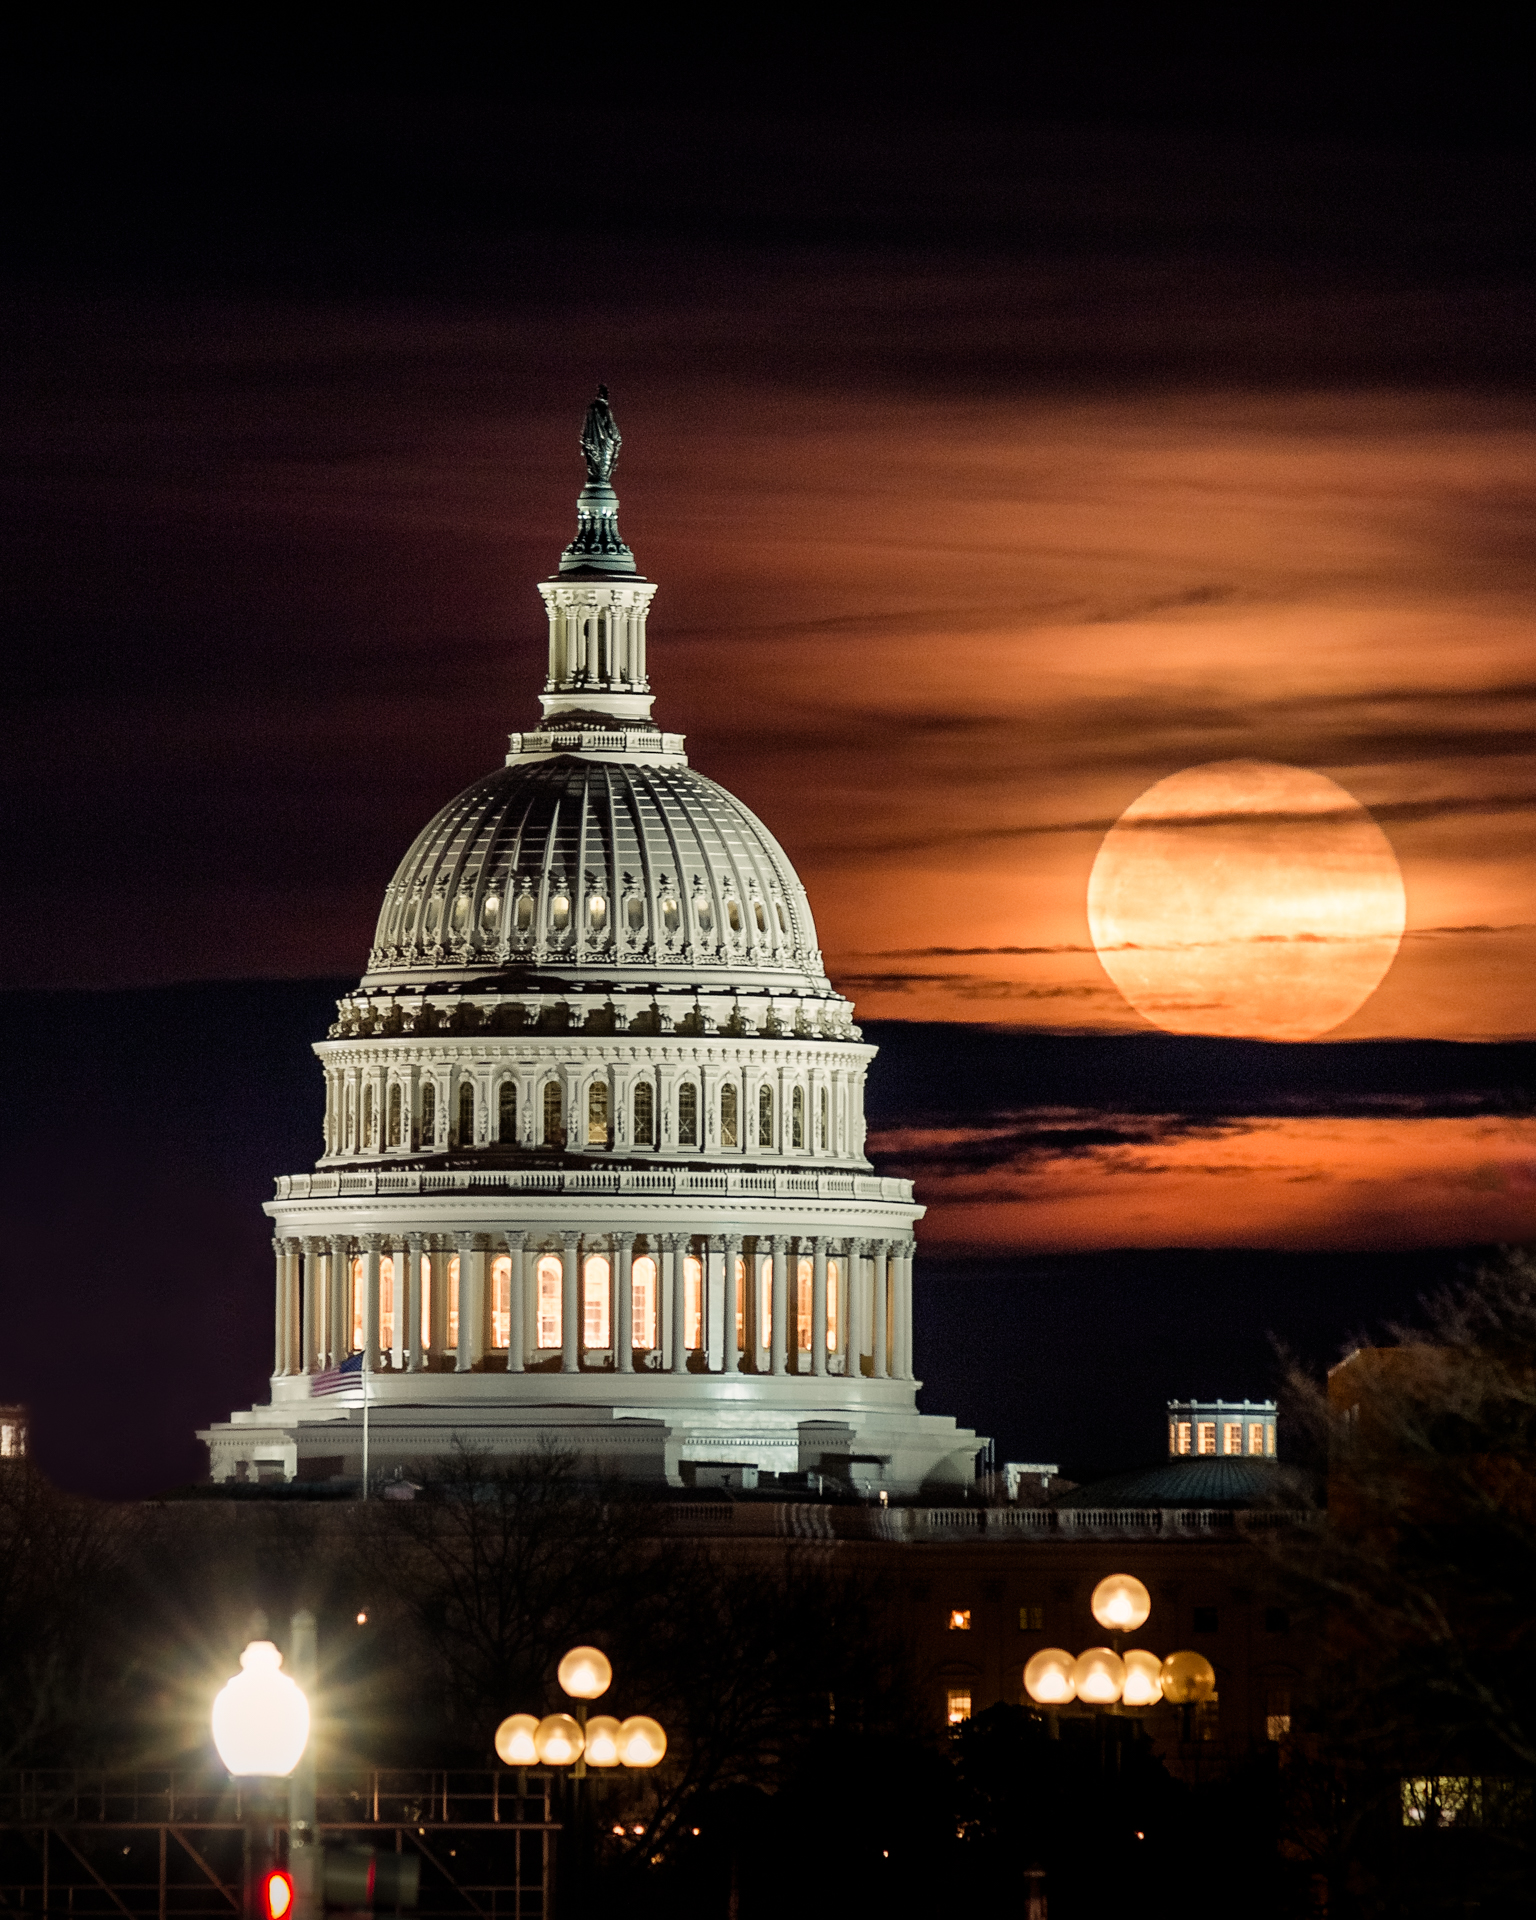 The Big Cheese – The moon rises over the Capitol{&amp;nbsp;}(Image: Zack Lewkowicz)<p></p>